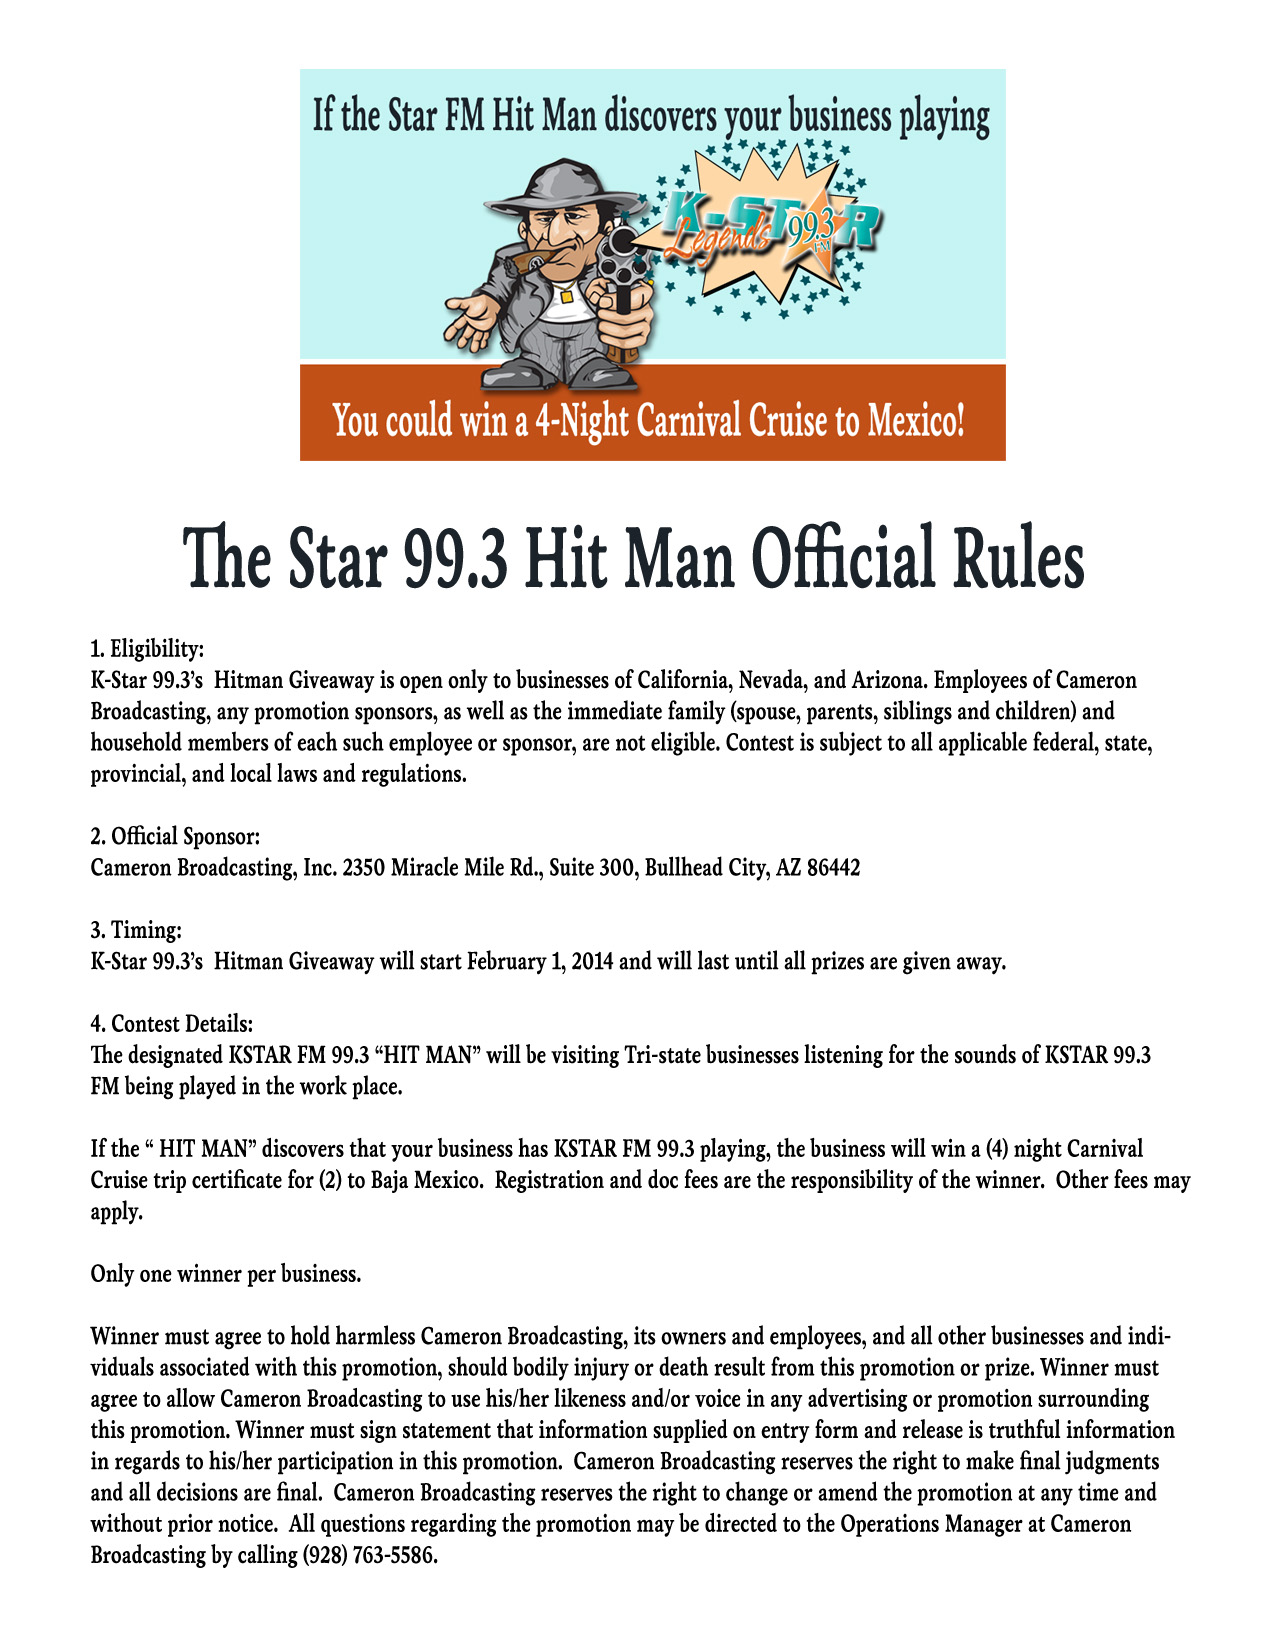 The 99.3 Hit Man Official Rules